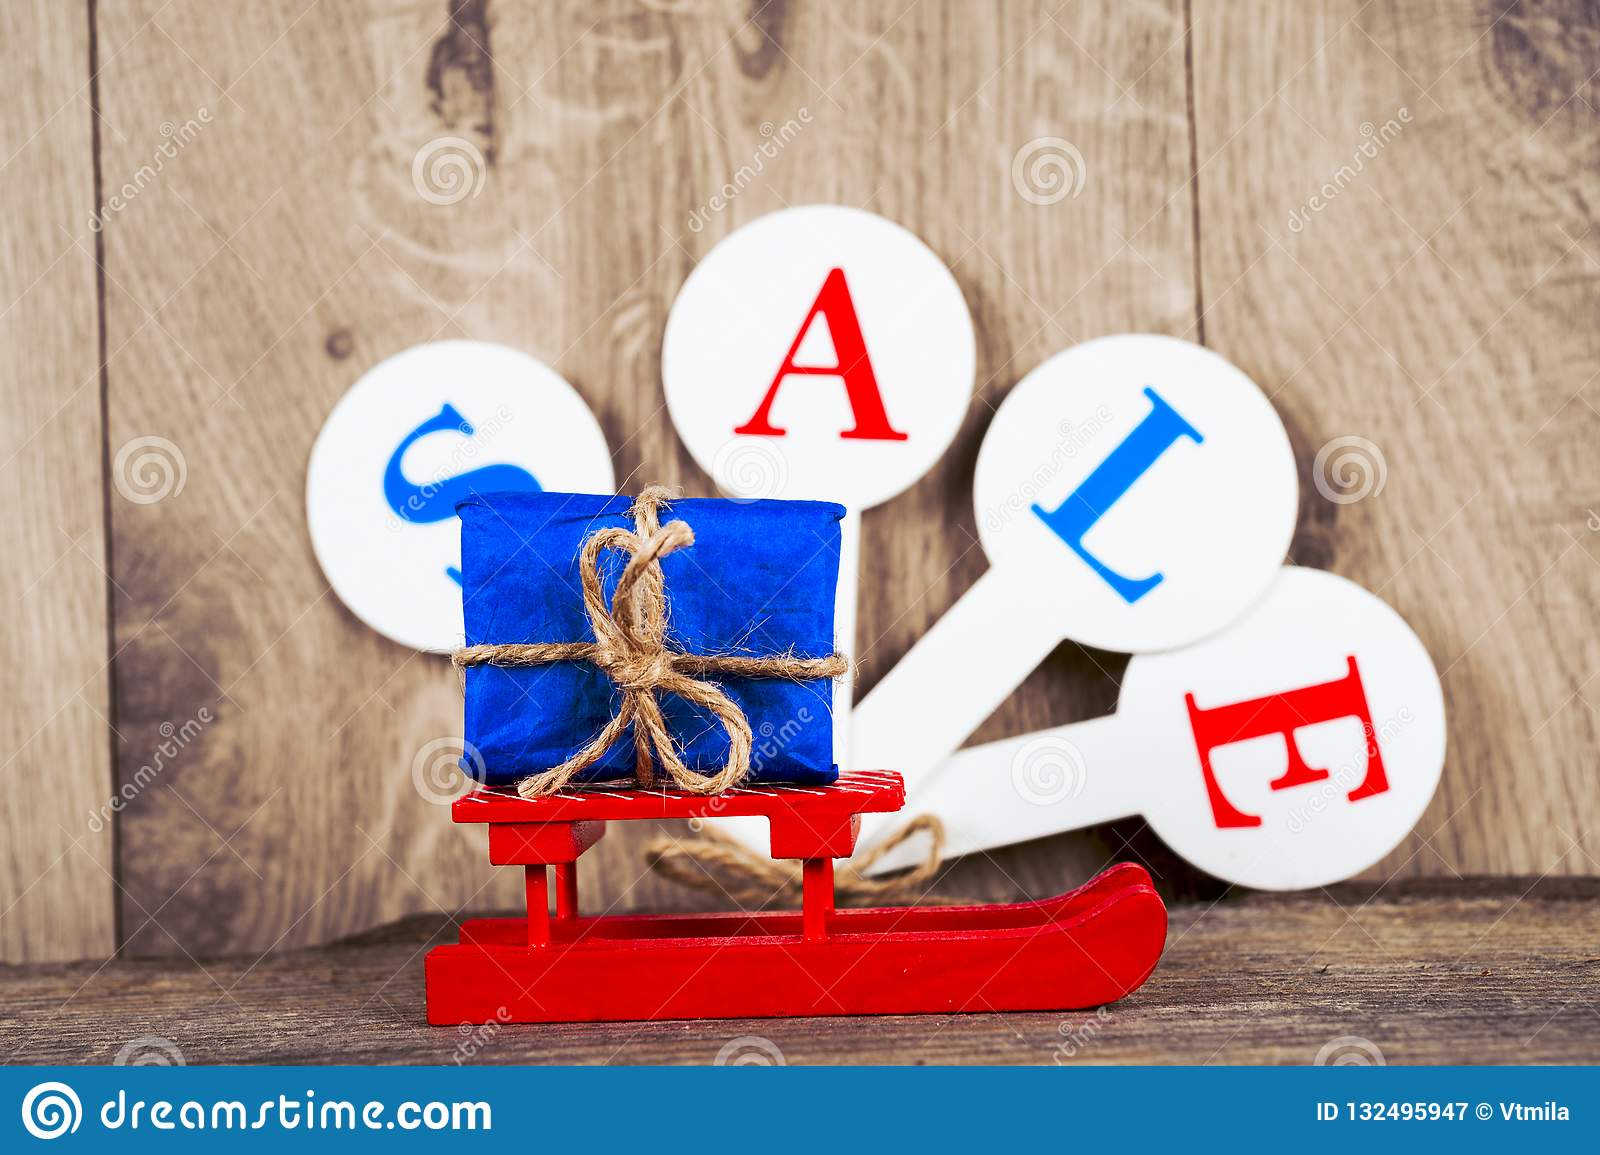 Conceptual photo of Christmas sales or gift shopping. The word SALE